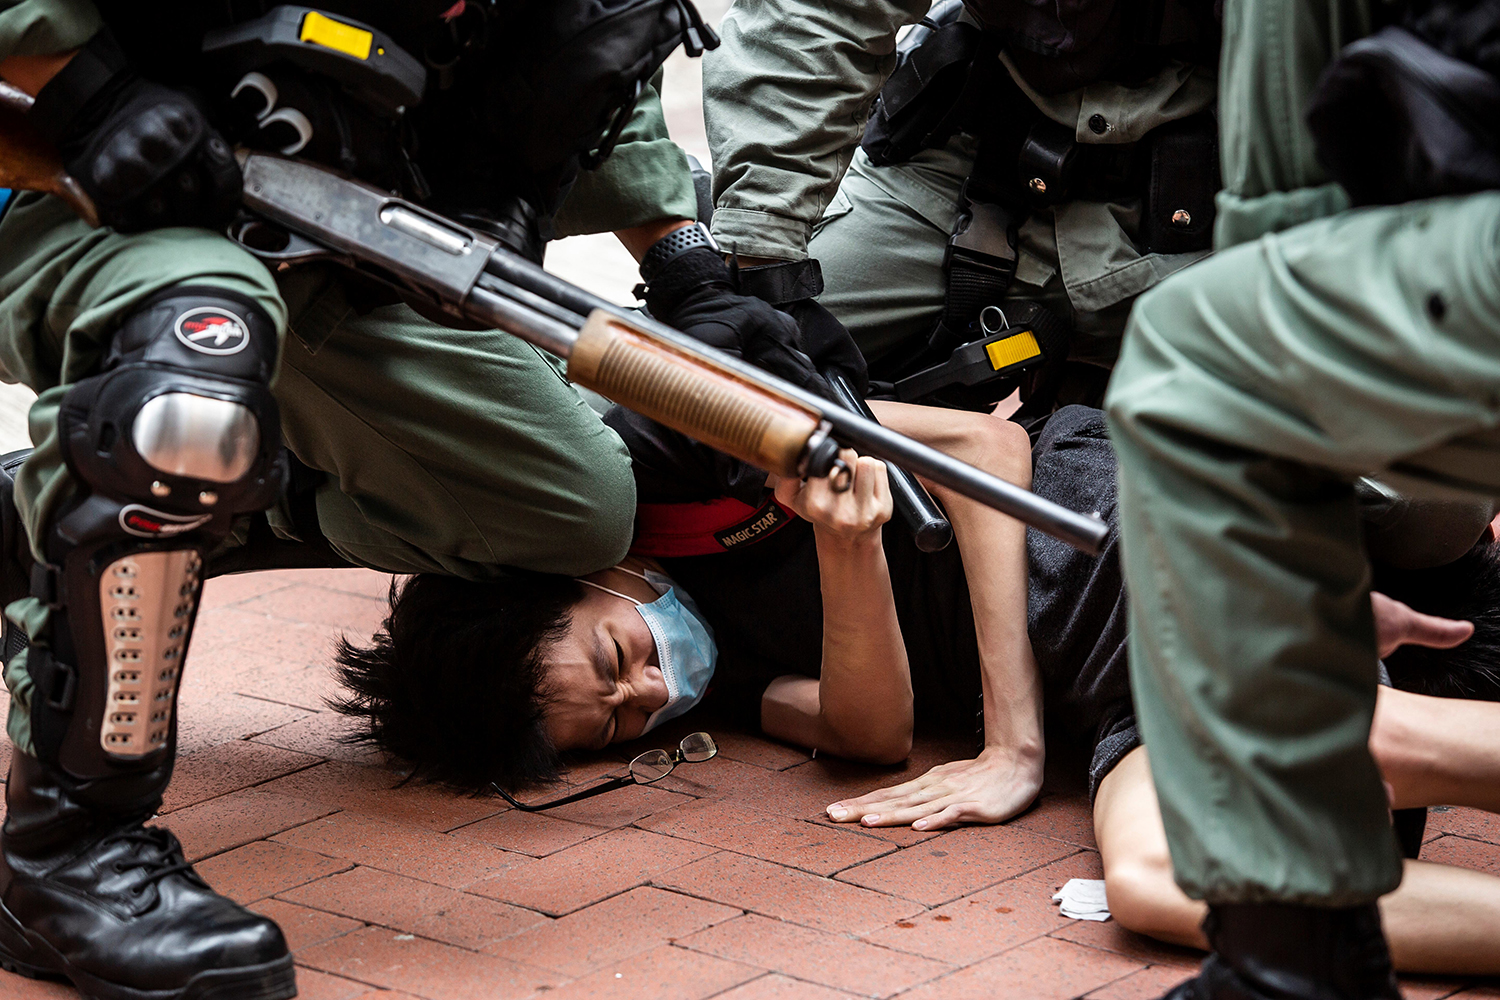 A pro-democracy protester is arrested by police in the Causeway Bay district of Hong Kong on May 24, as a proposal to enact new security legislation in Hong Kong is debated. Four days later, China's National People's Congress approved the proposal, which is expected to ban treason, subversion, and sedition. ISAAC LAWRENCE/AFP via Getty Images